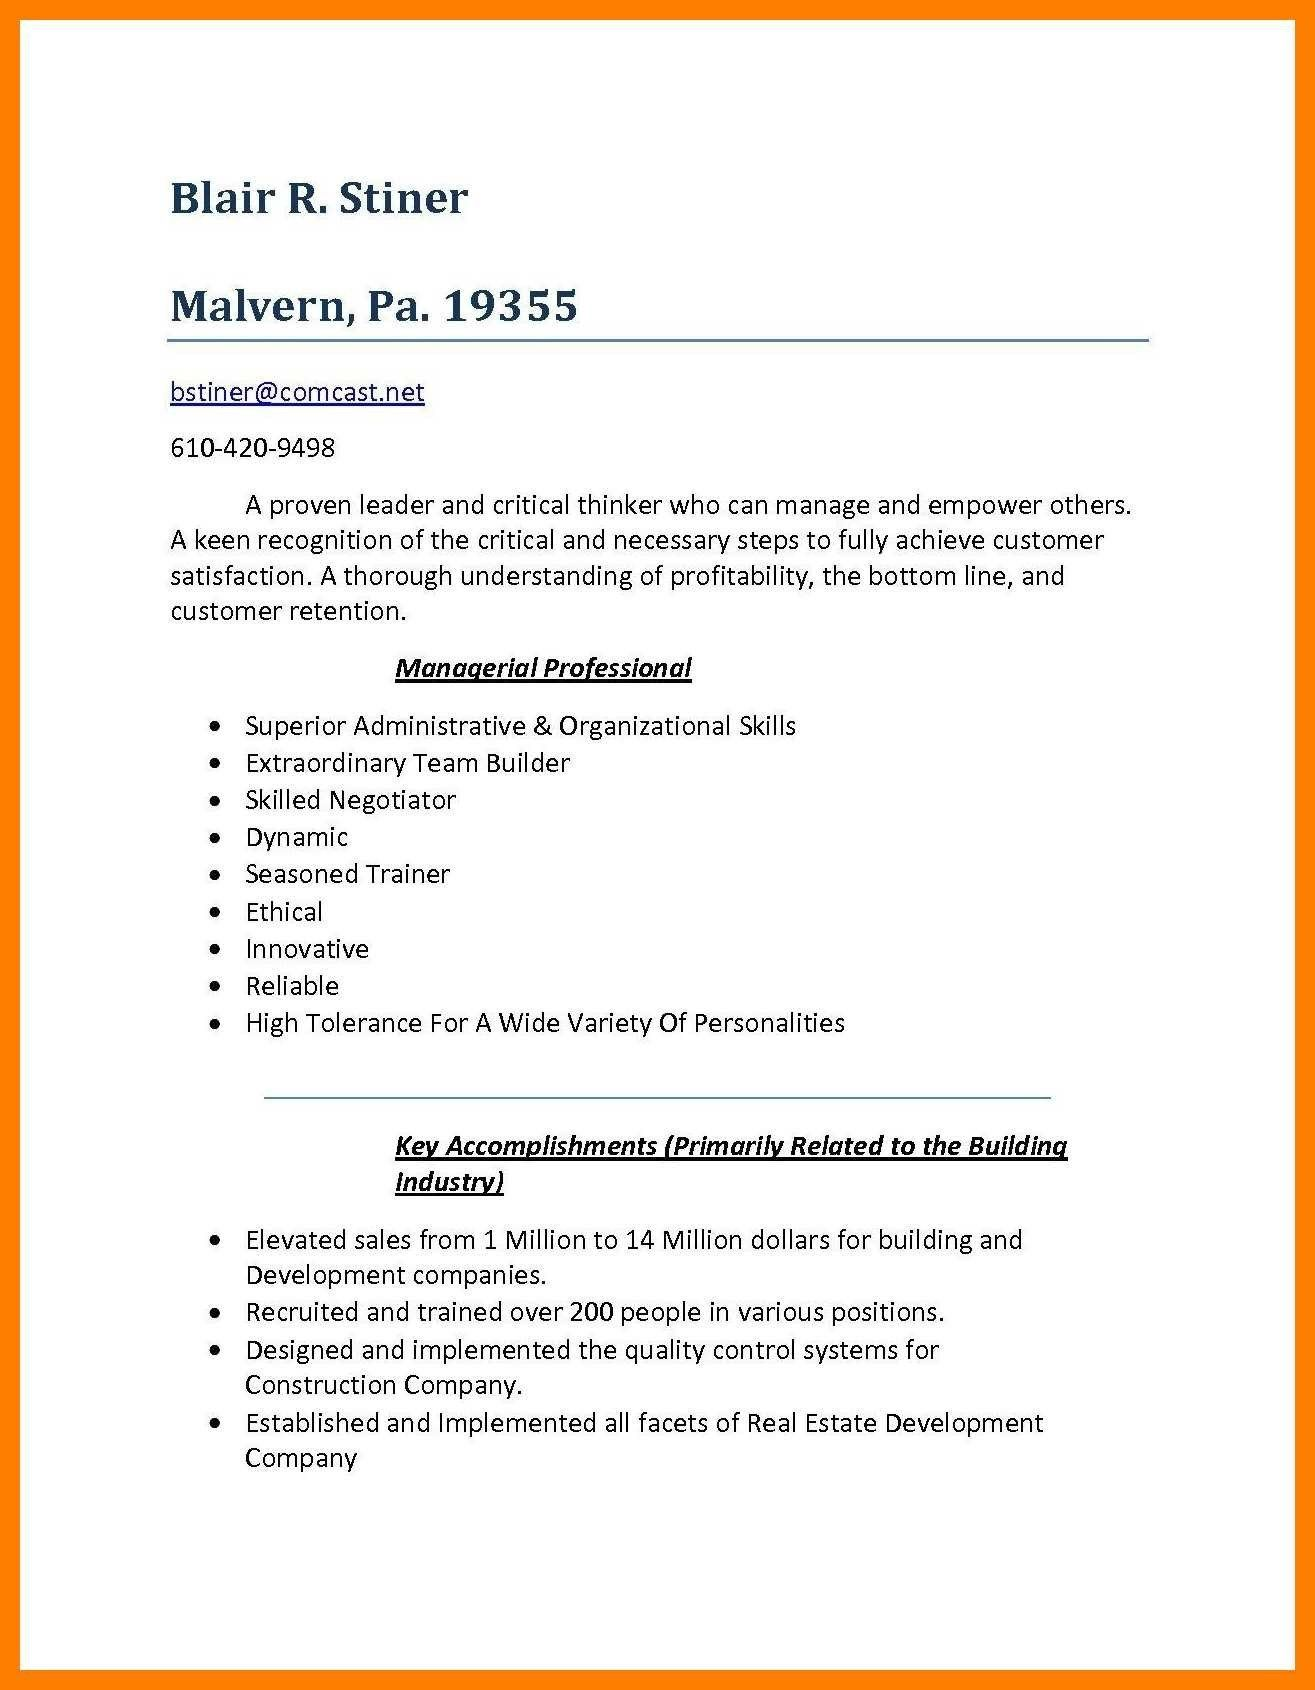 What Is The Resume Tips Skills For A Good Resume Wikiresume Com Resume Tips Resume Tips No Experience Resume Skills